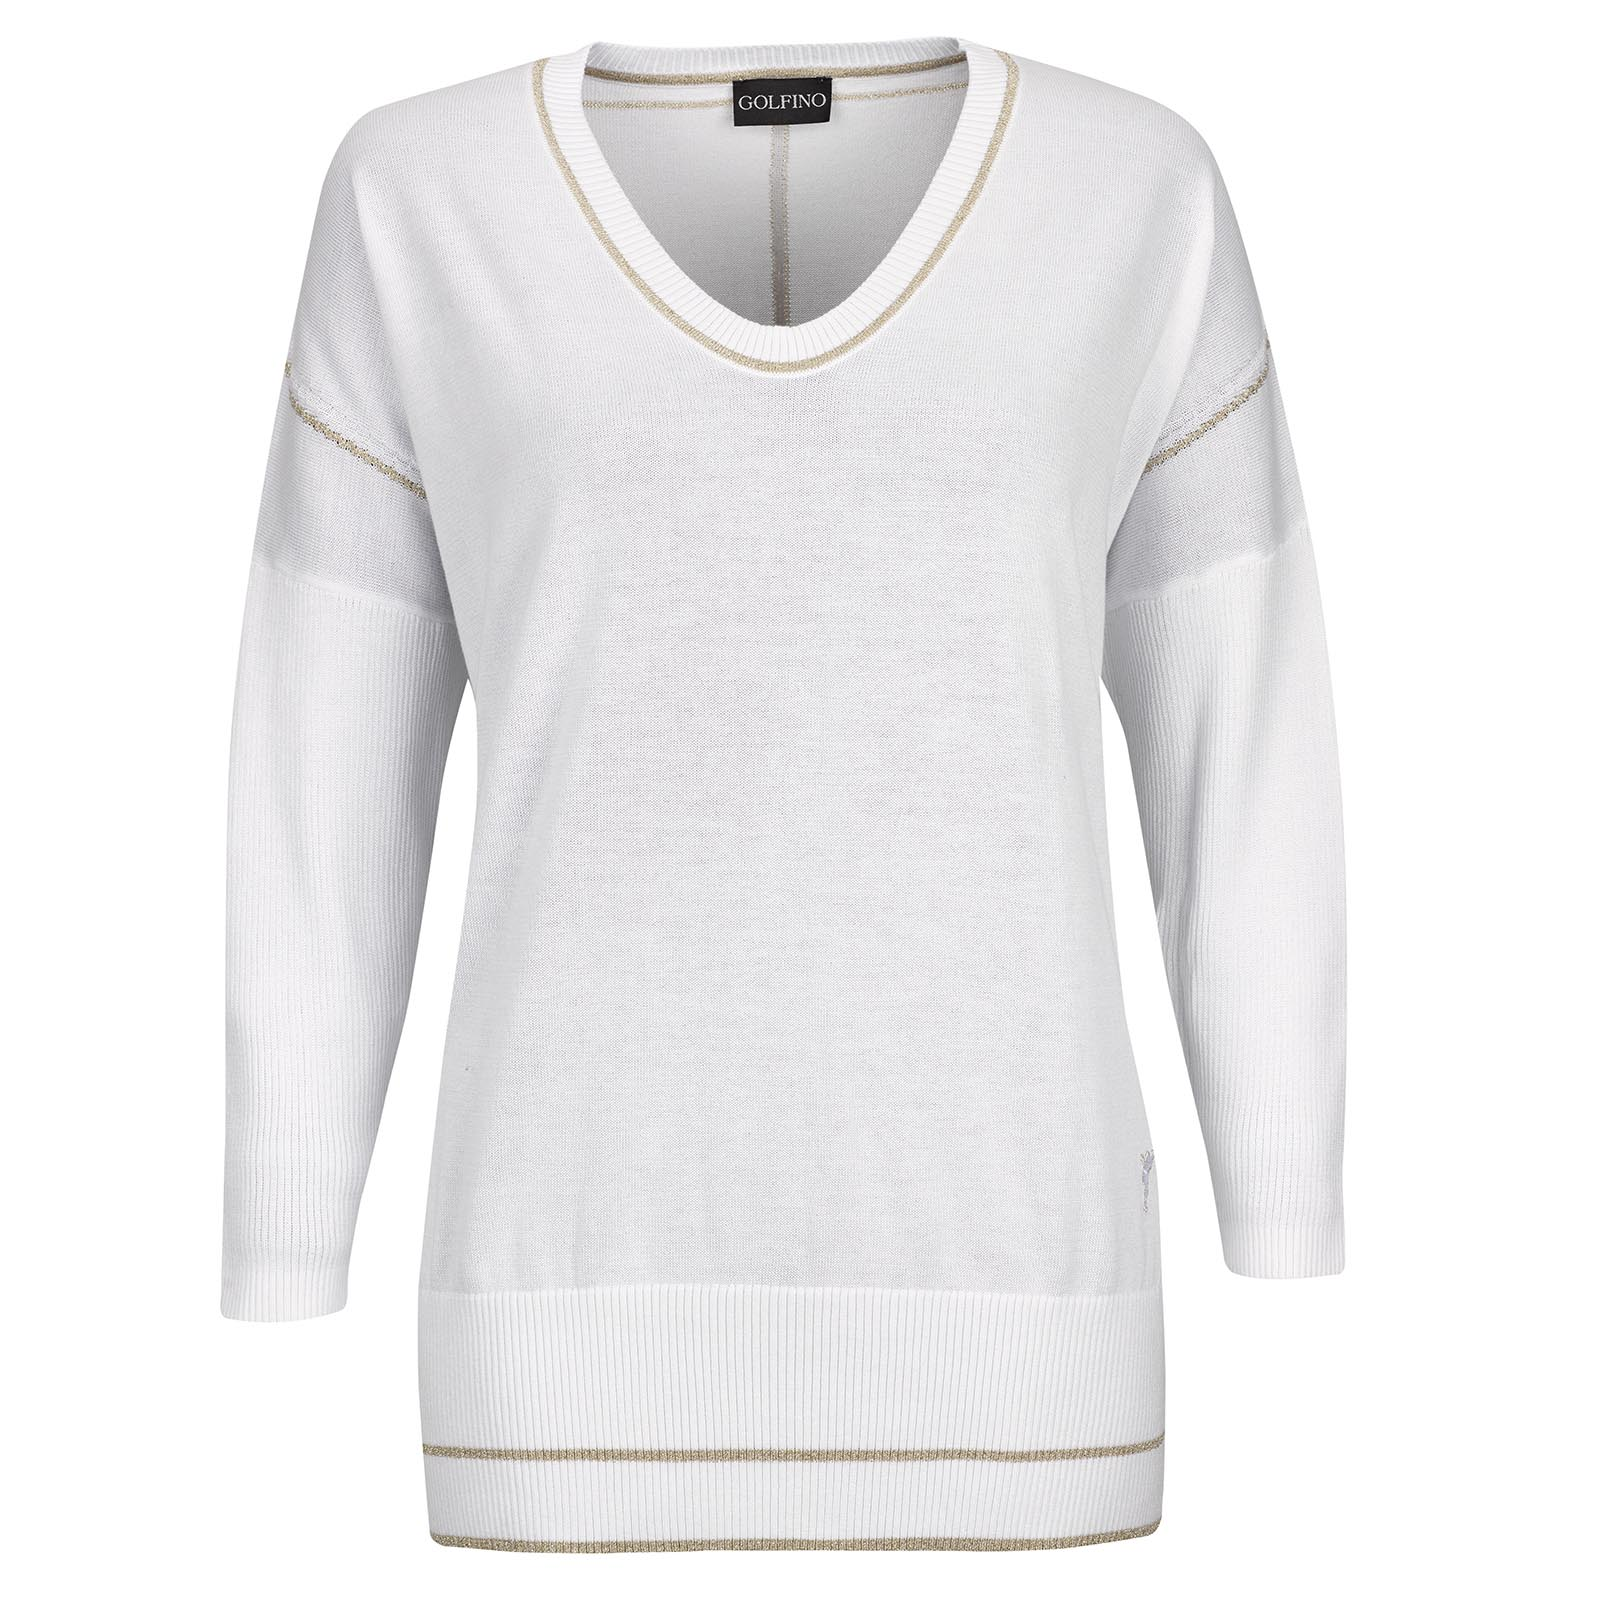 Ladies' Pima cotton v-neck pullover with gold details